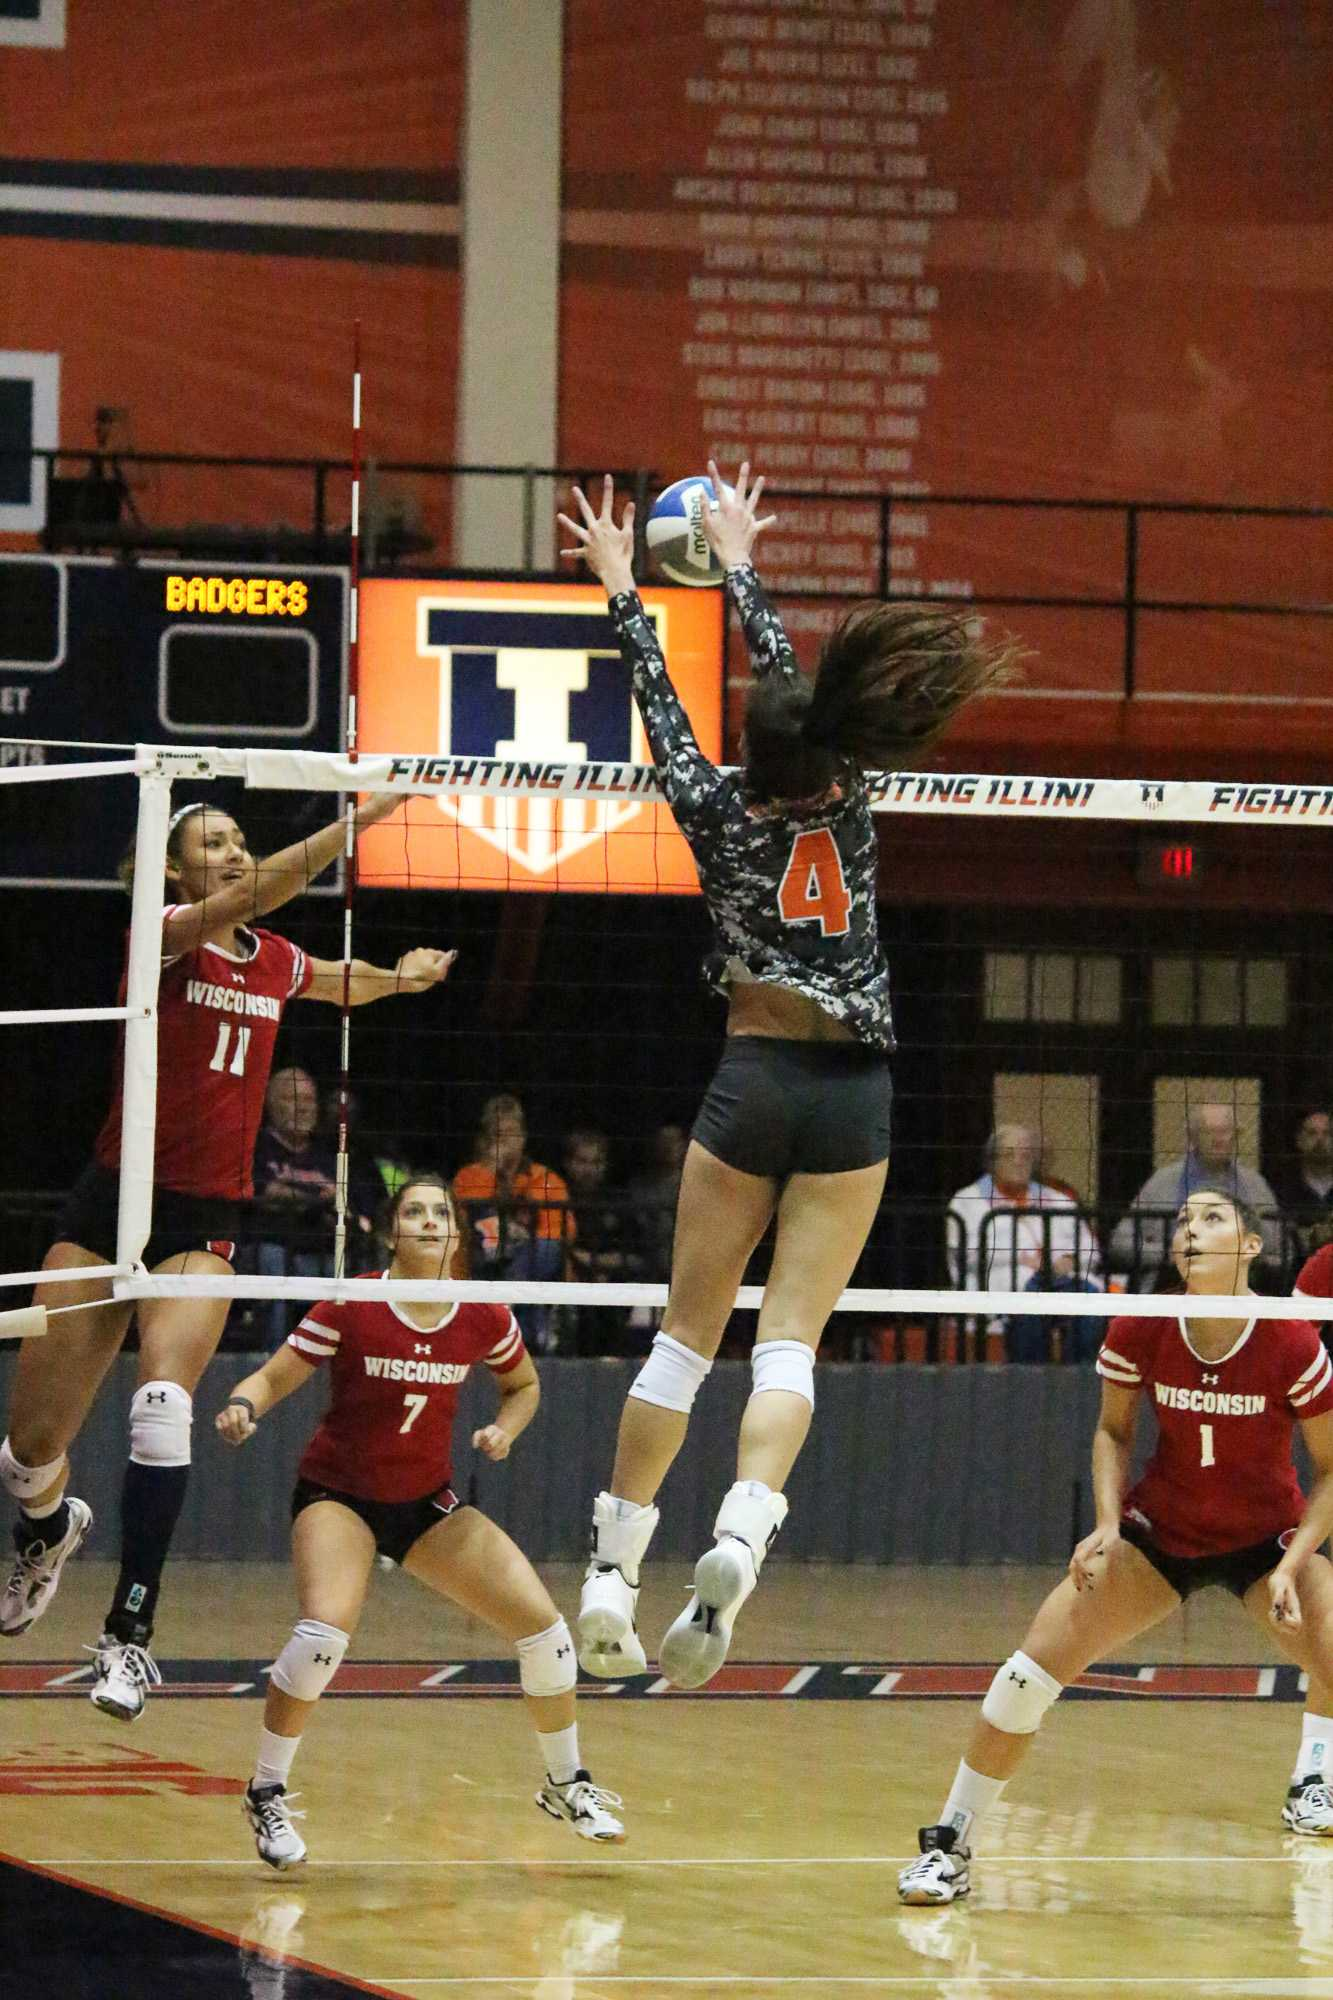 Michelle Strizak jumps up alone to block the spike from Wisconsin at Huff Hall on Friday, Nov. 11, 2016. Illini lost to Wisconsin 0-3.